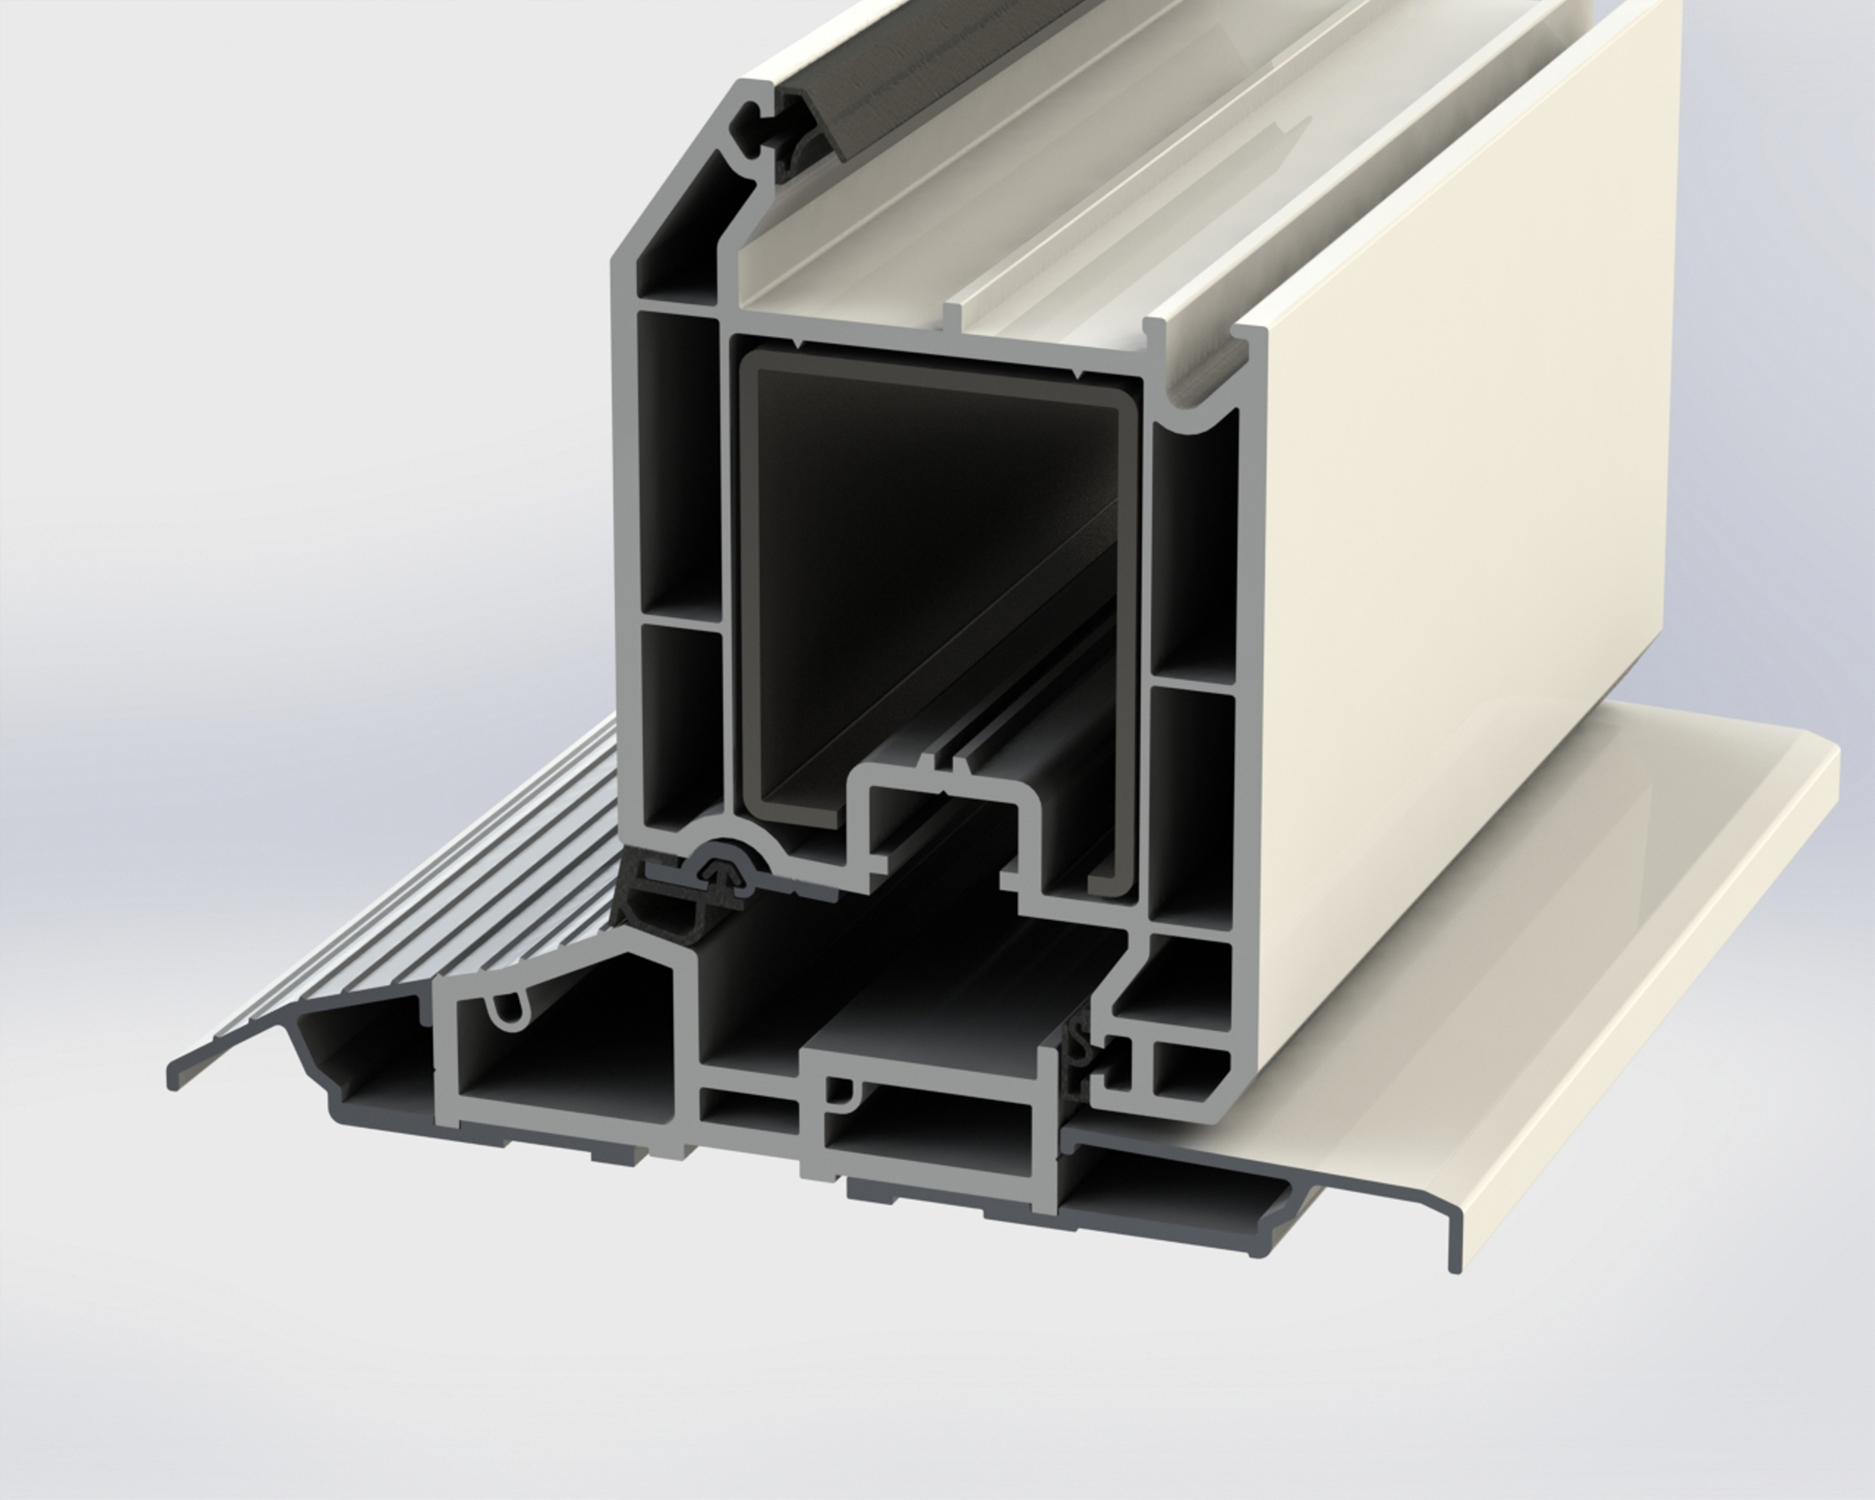 Eurocell Introduces Lower Pvc U Threshold To Its Eurologik